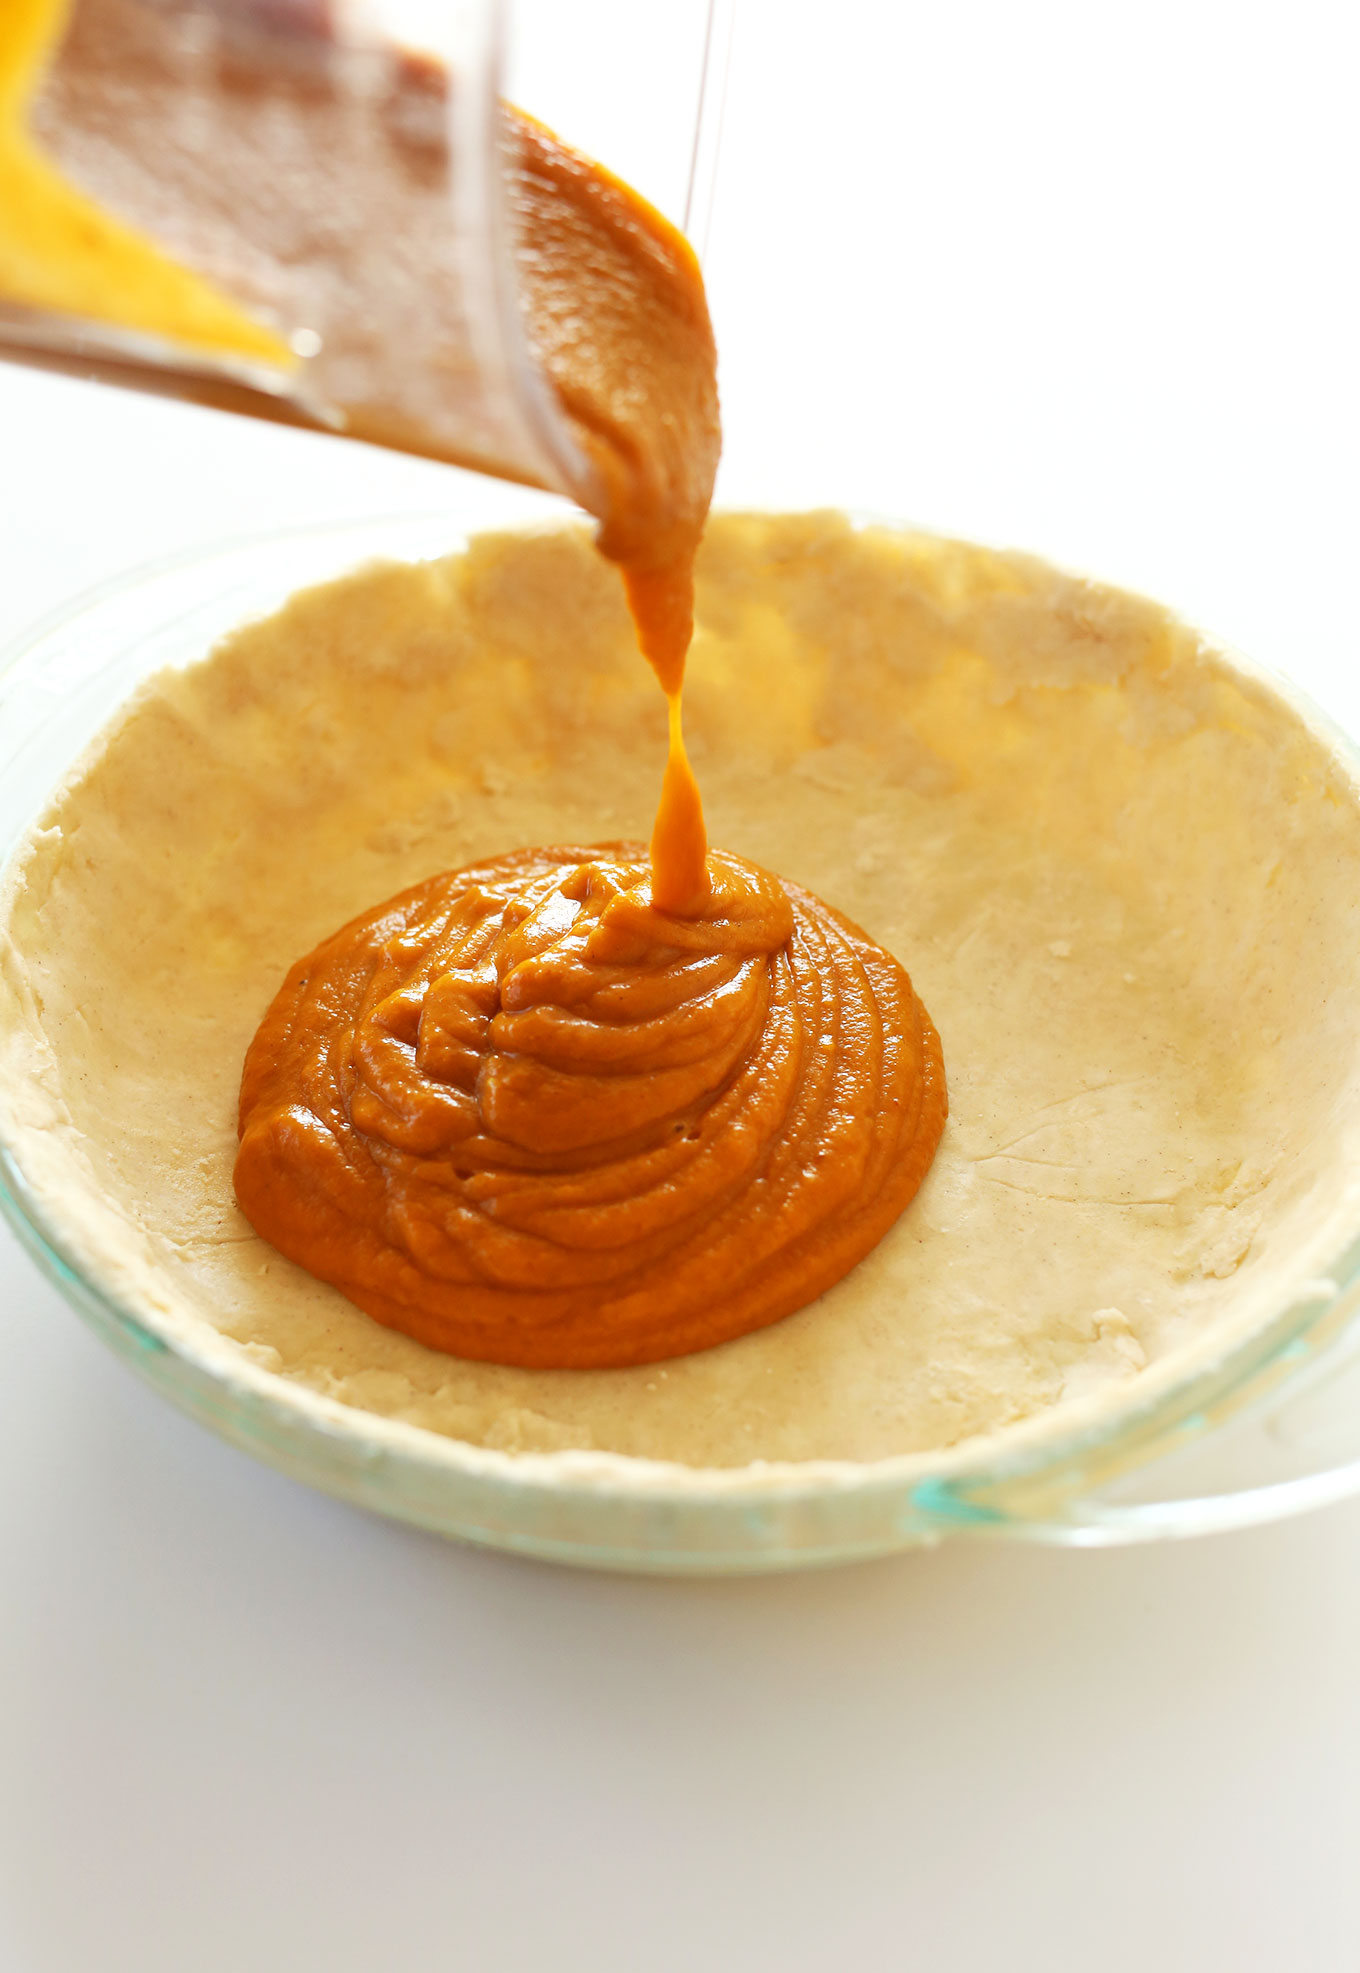 Pouring pumpkin filling into a gluten-free pie crust